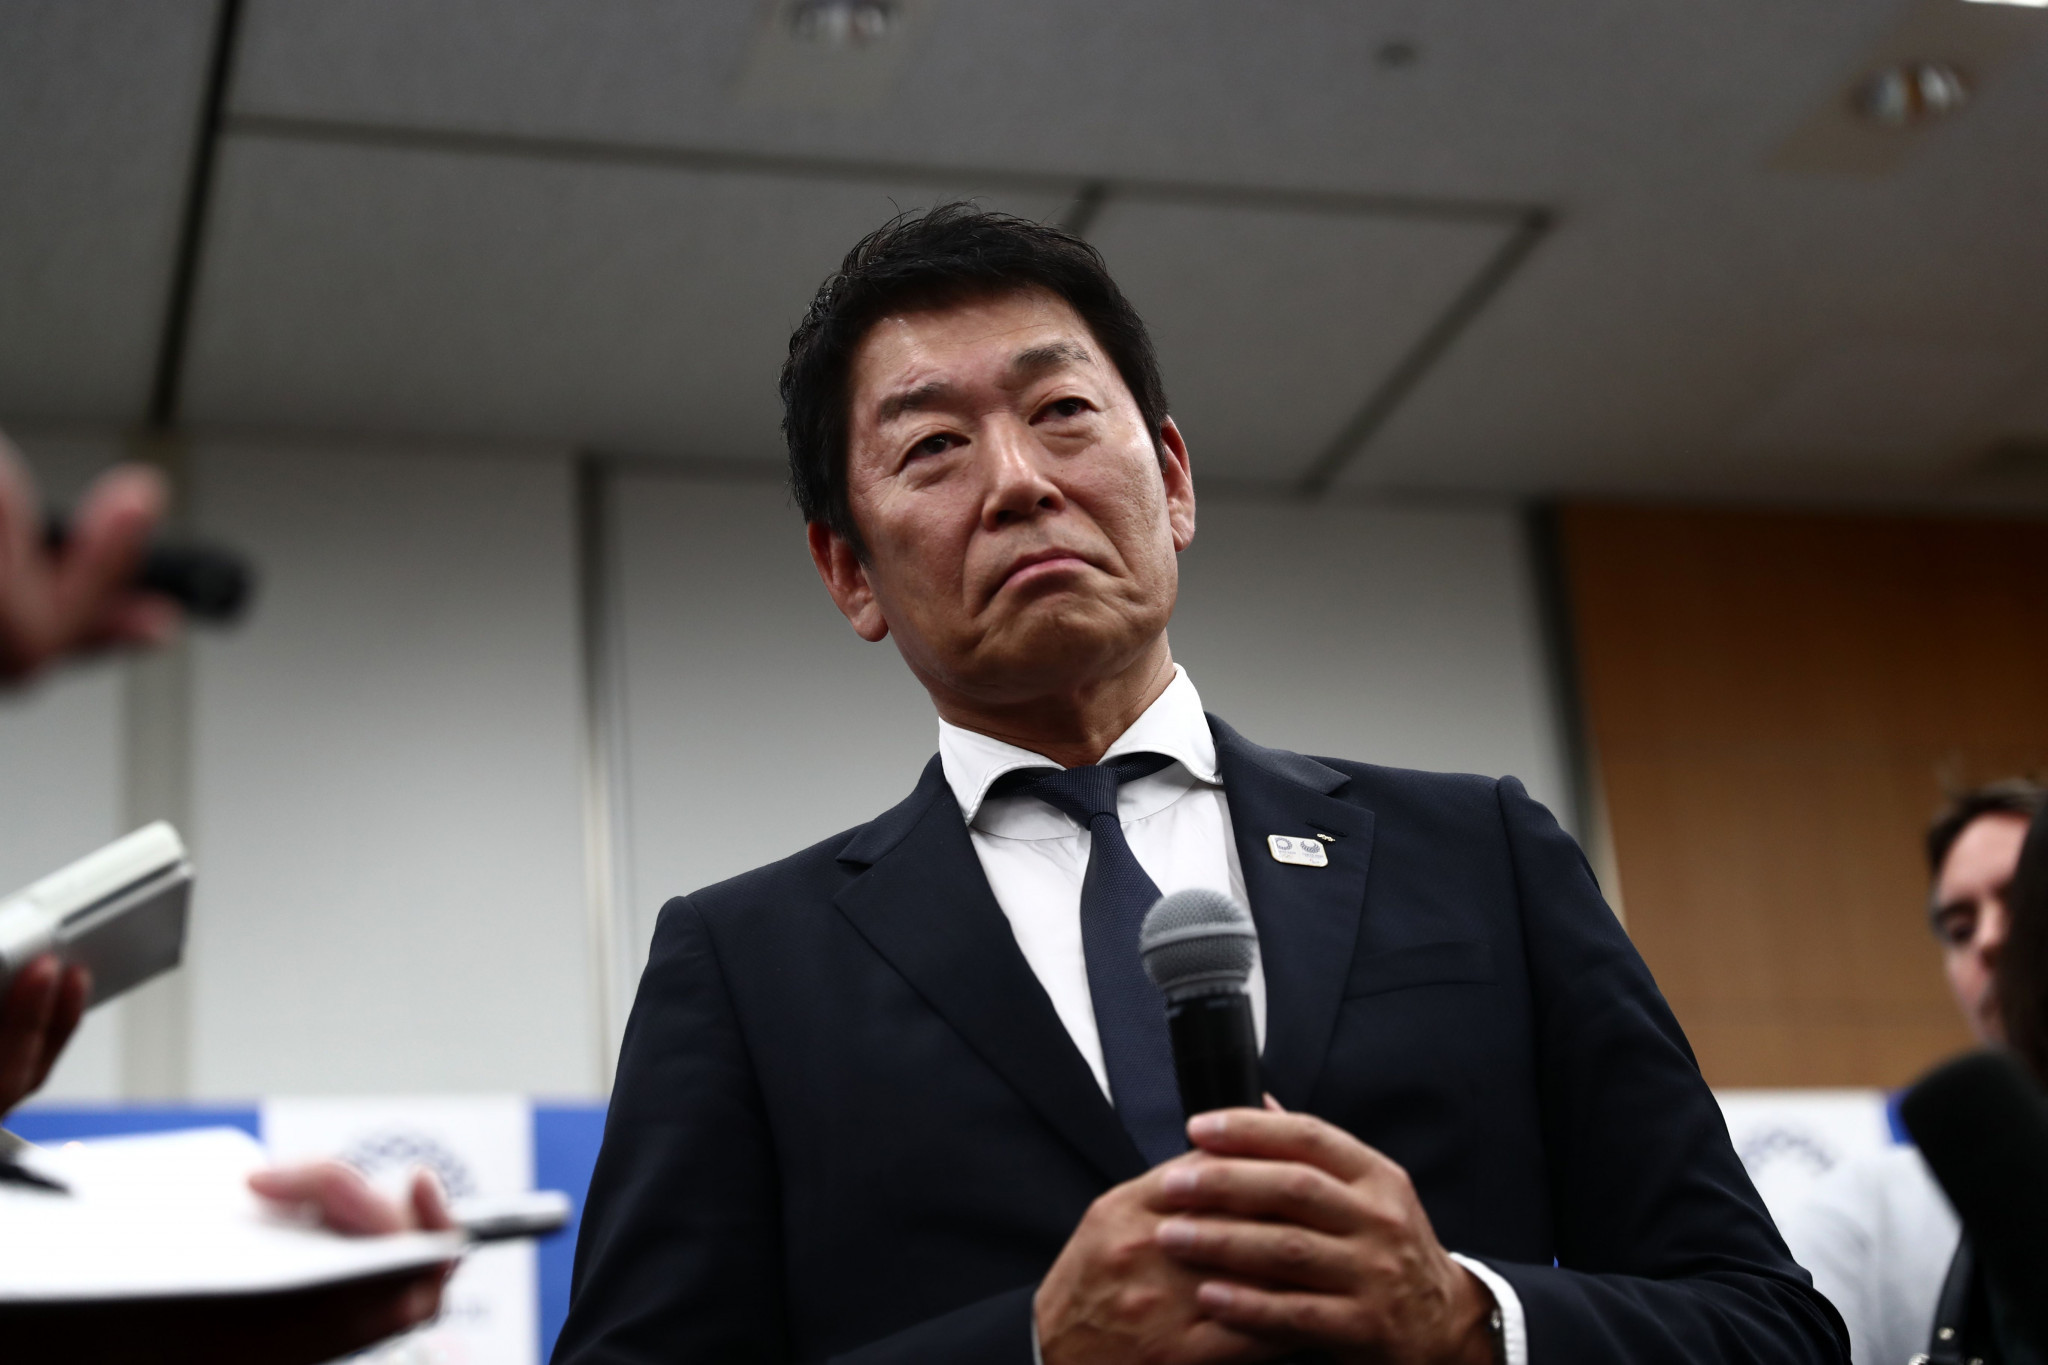 Morinari Watanabe is chairing an IOC taskforce responsible for overseeing the delivery of qualification events and the Tokyo 2020 Olympic boxing tournament ©Getty Images